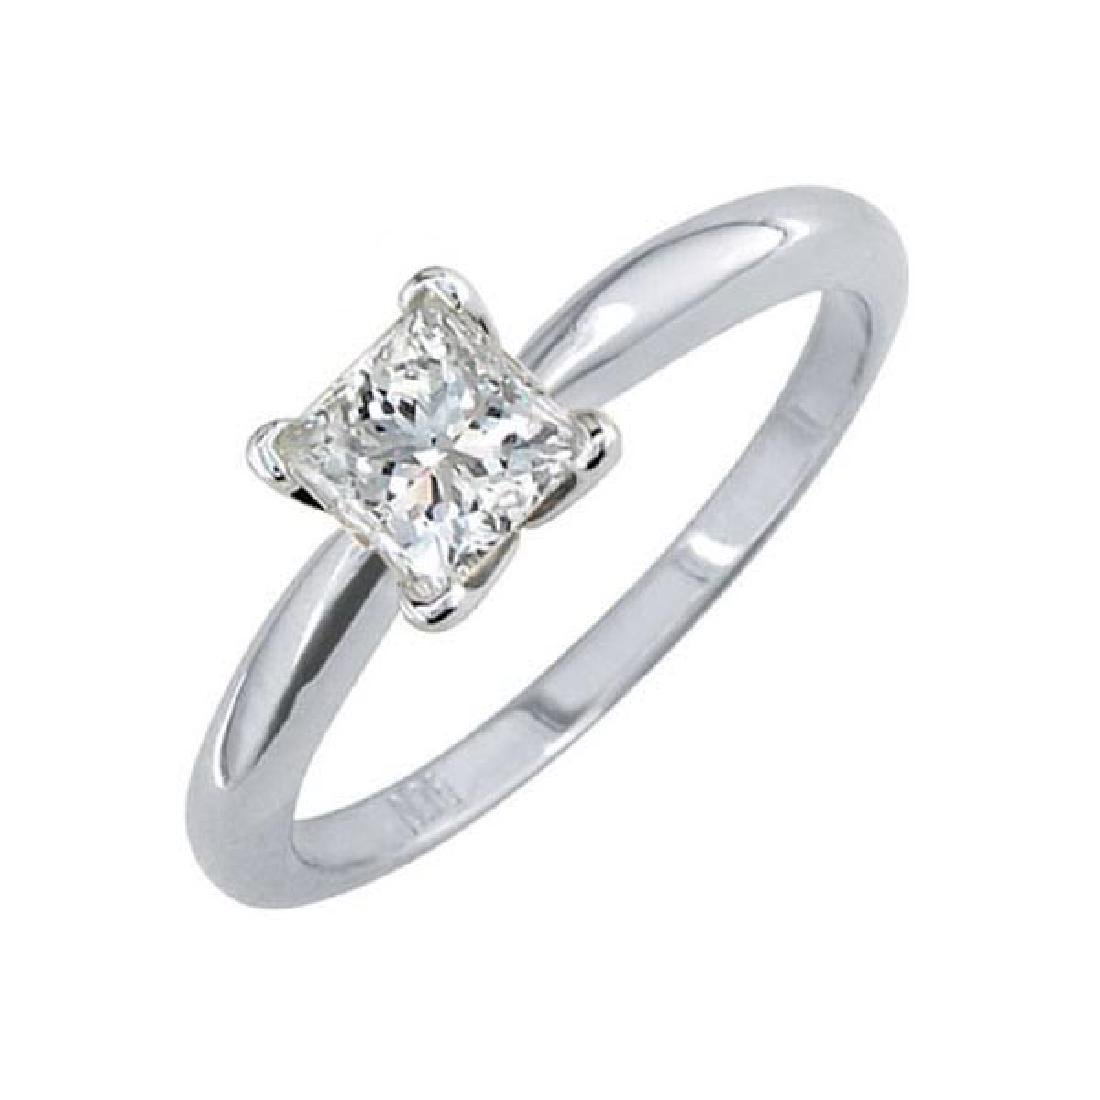 Certified 0.51 CTW Princess Diamond Solitaire 14k Ring